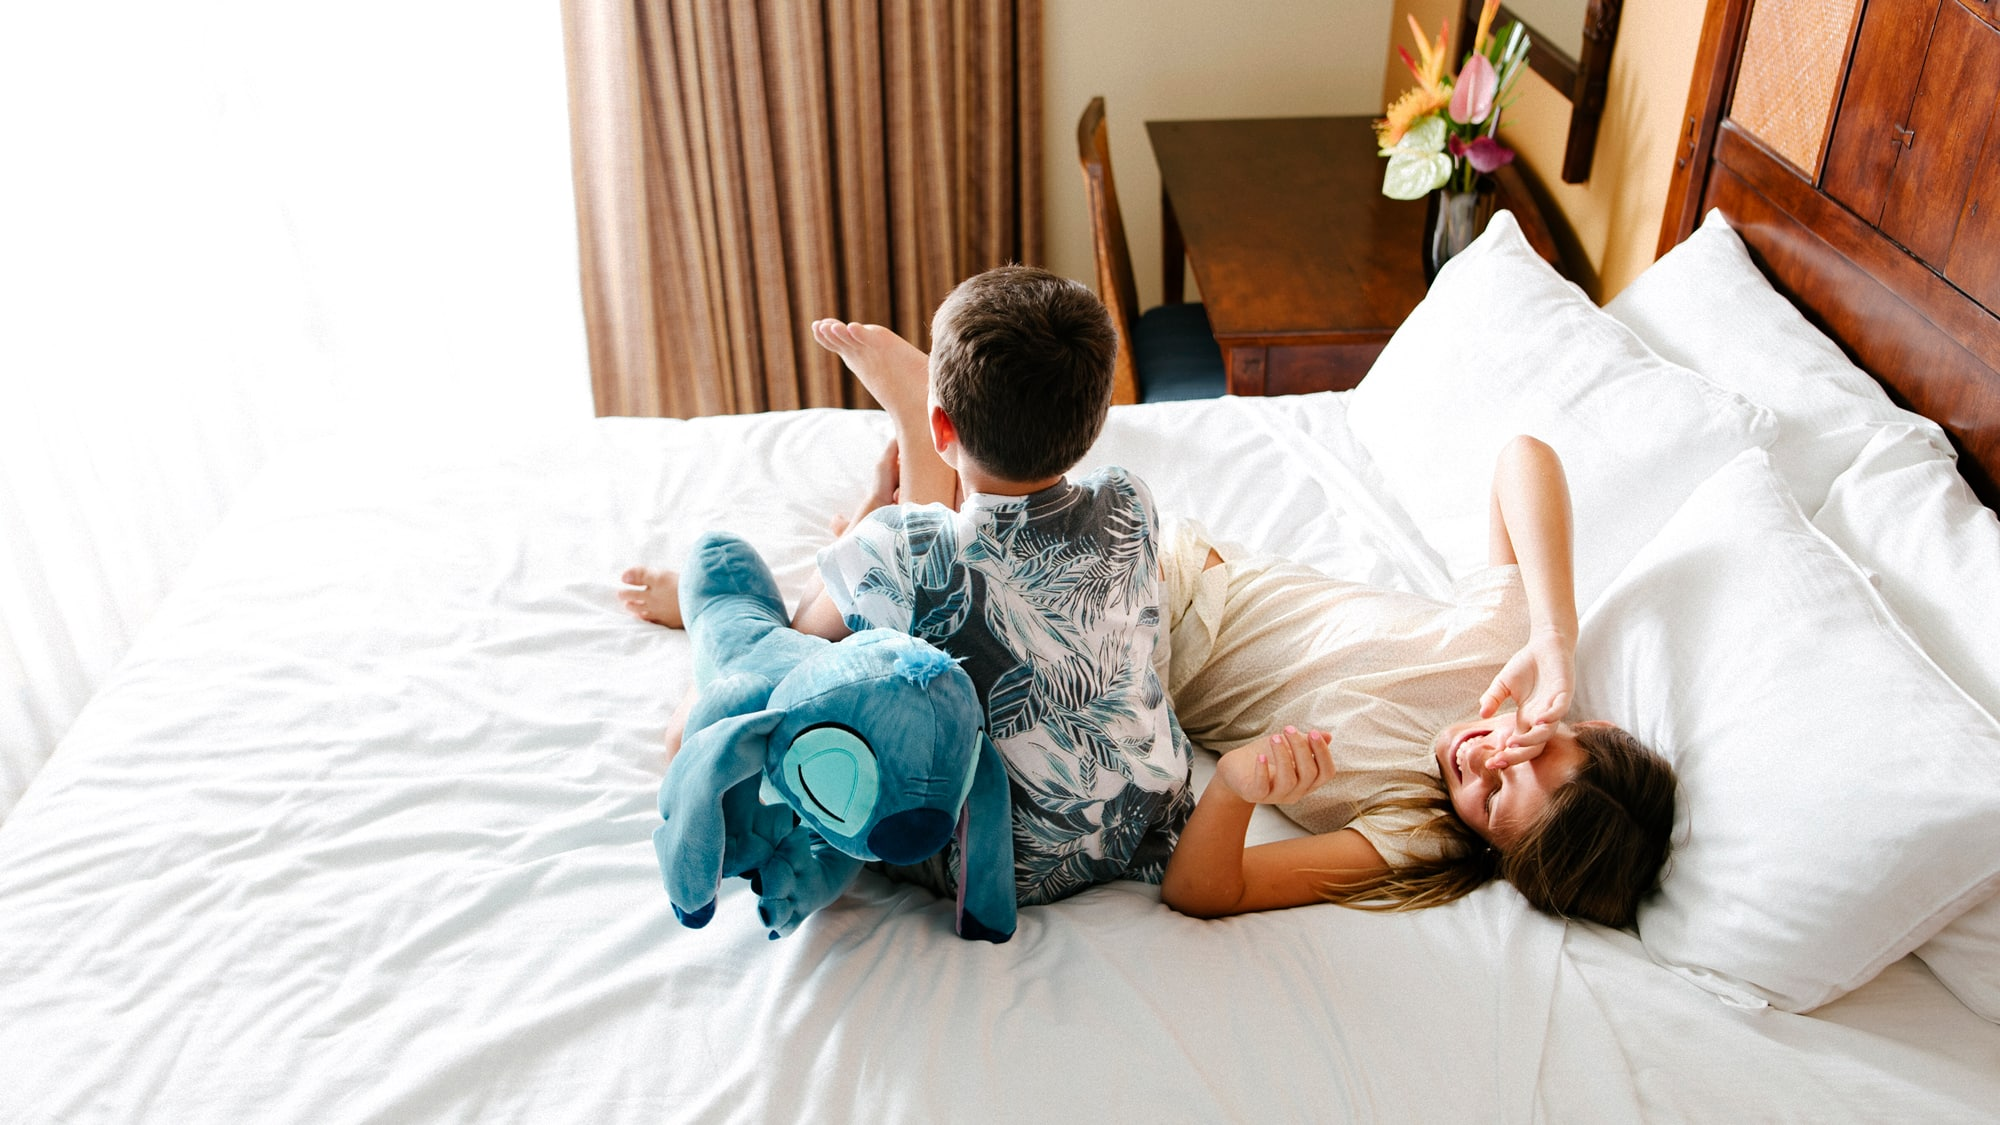 Two children lounging on a hotel bed